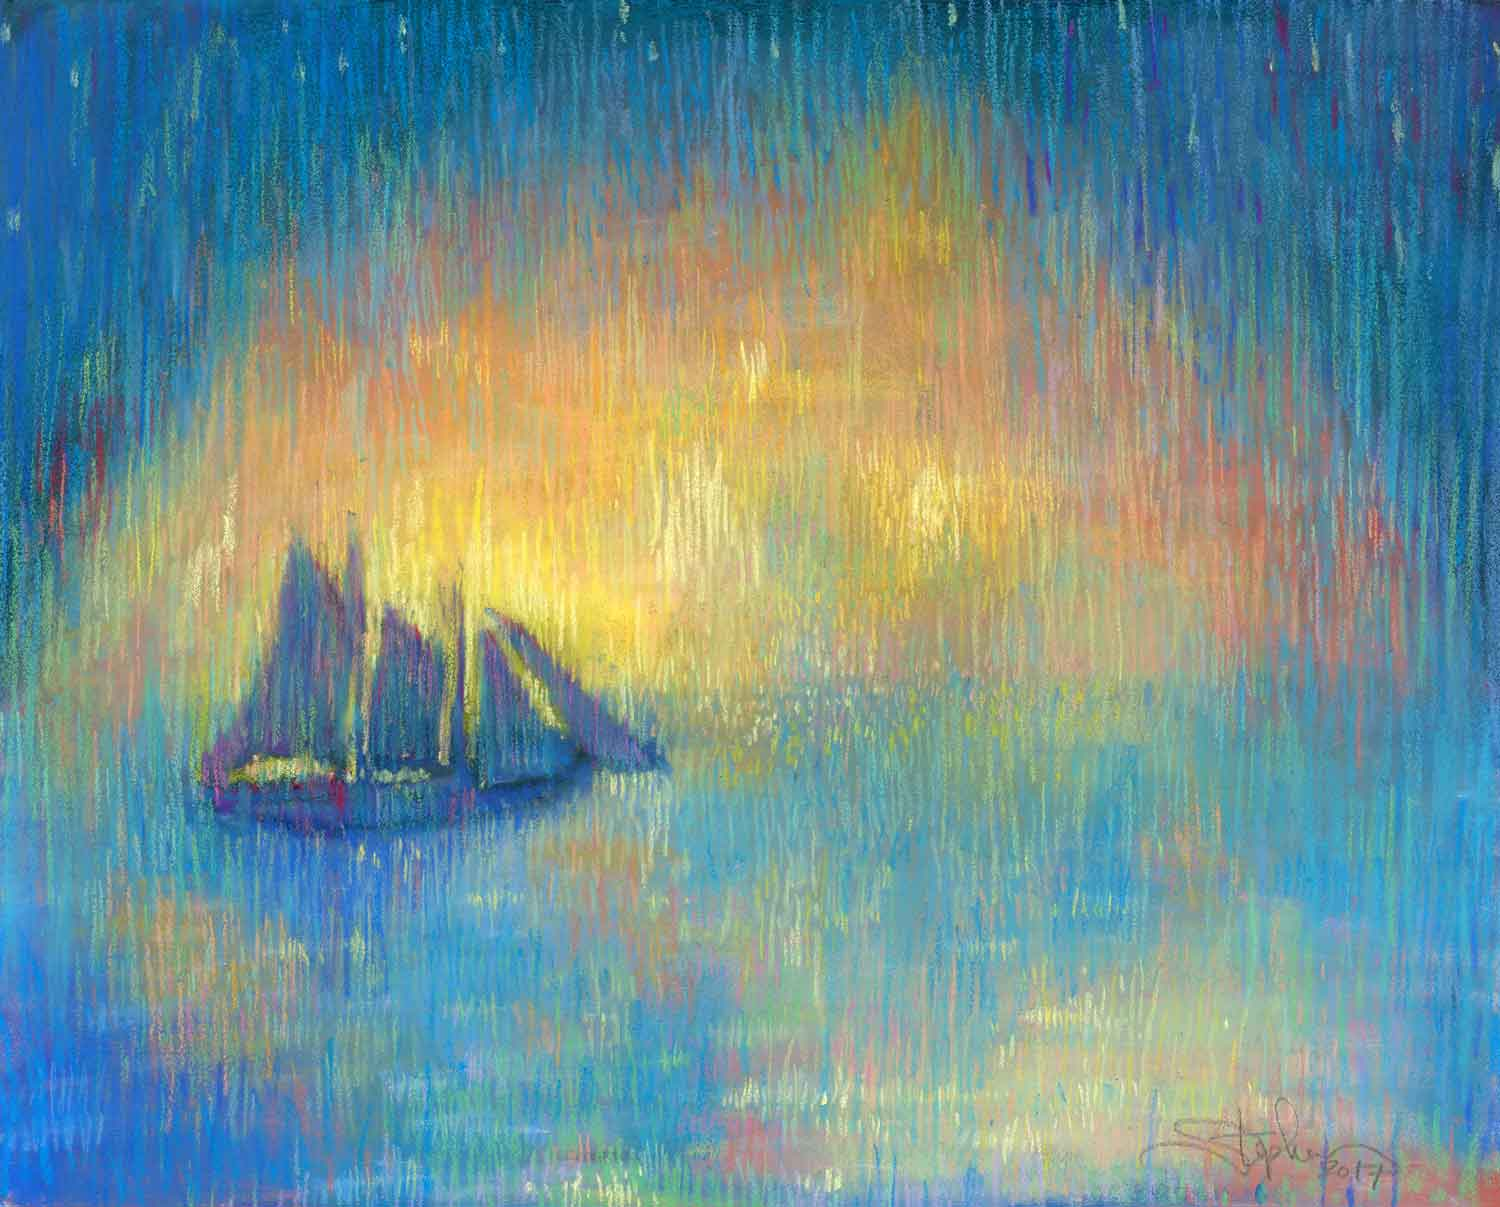 Leaving the Harbor, pastel by Stephanie Thomas Berry